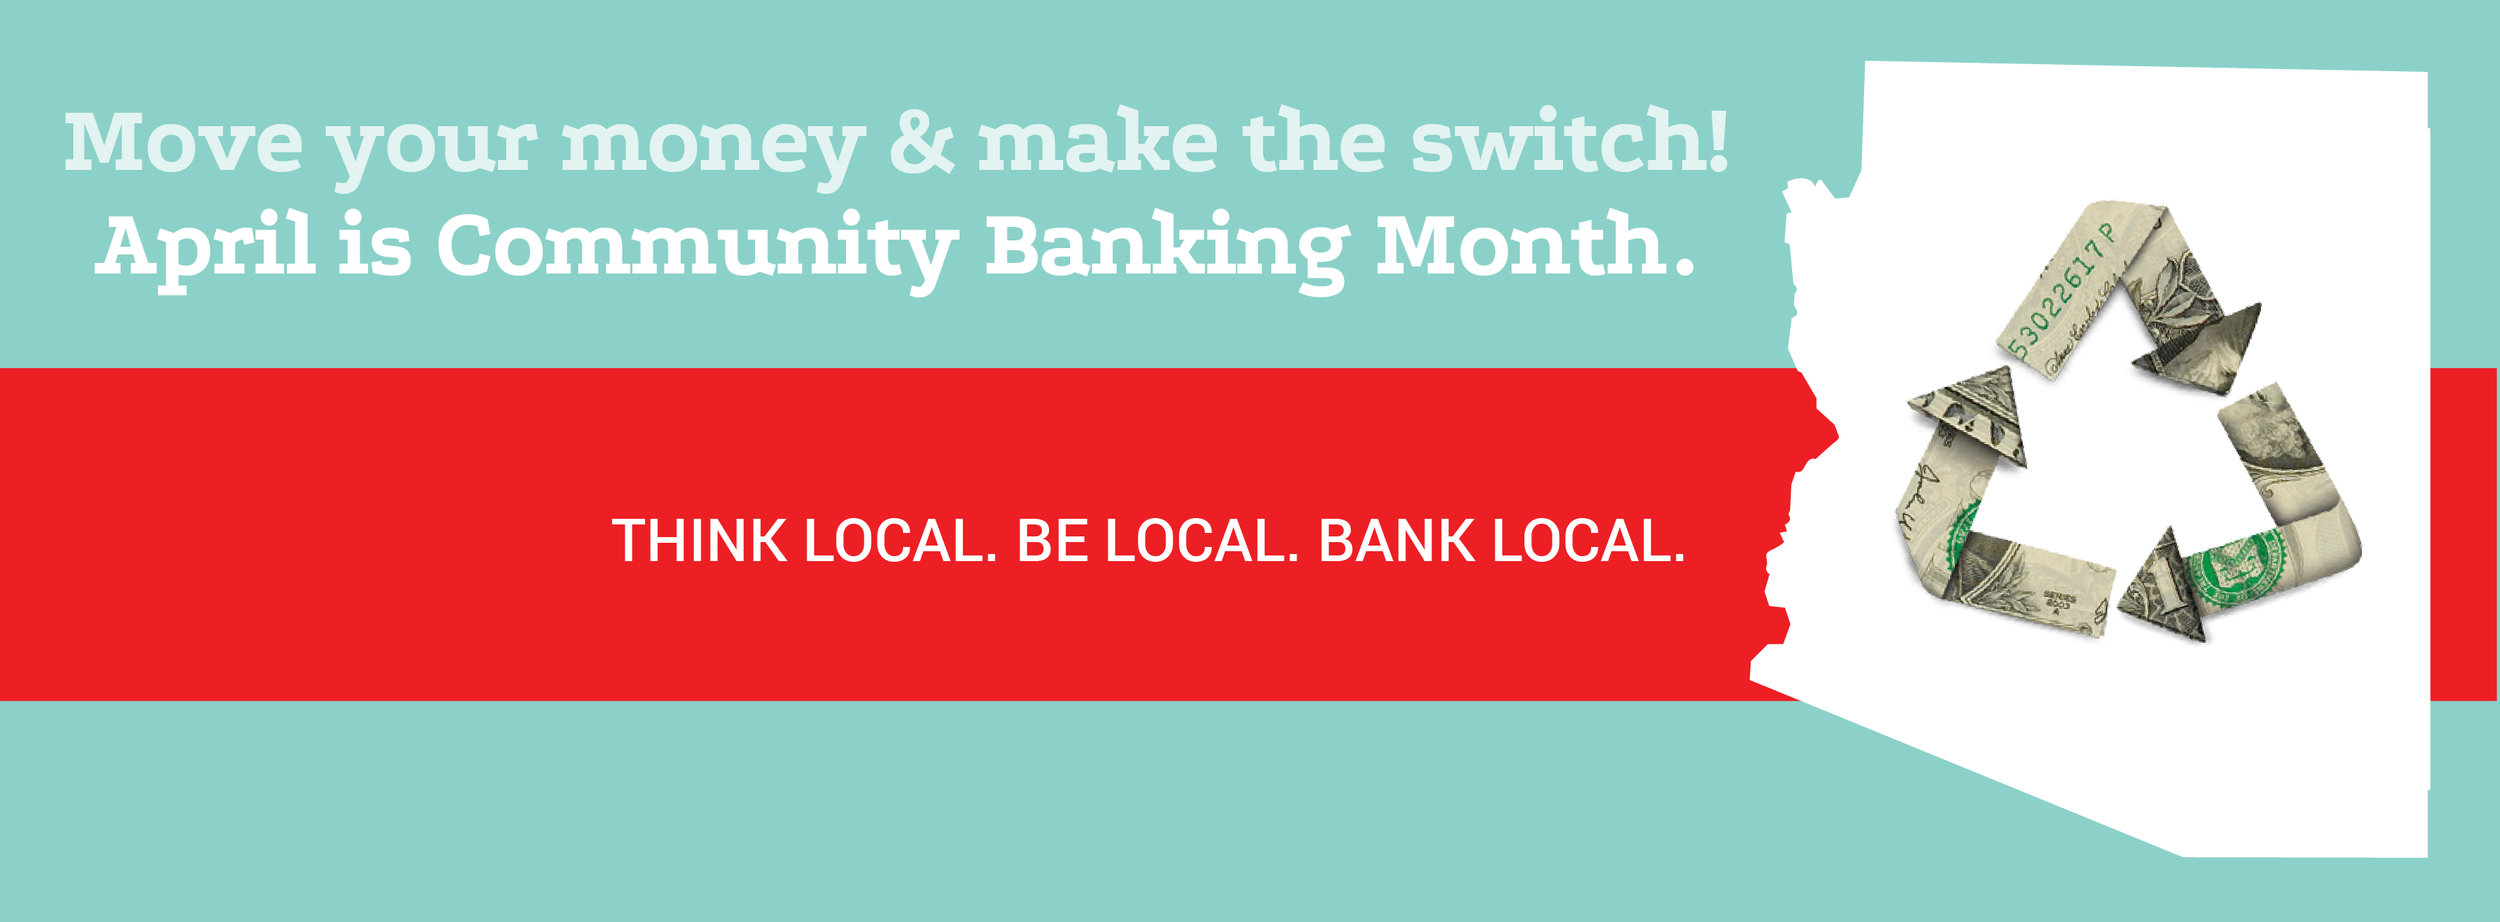 CommunityBankingMonth-2016-FBCoverPhoto